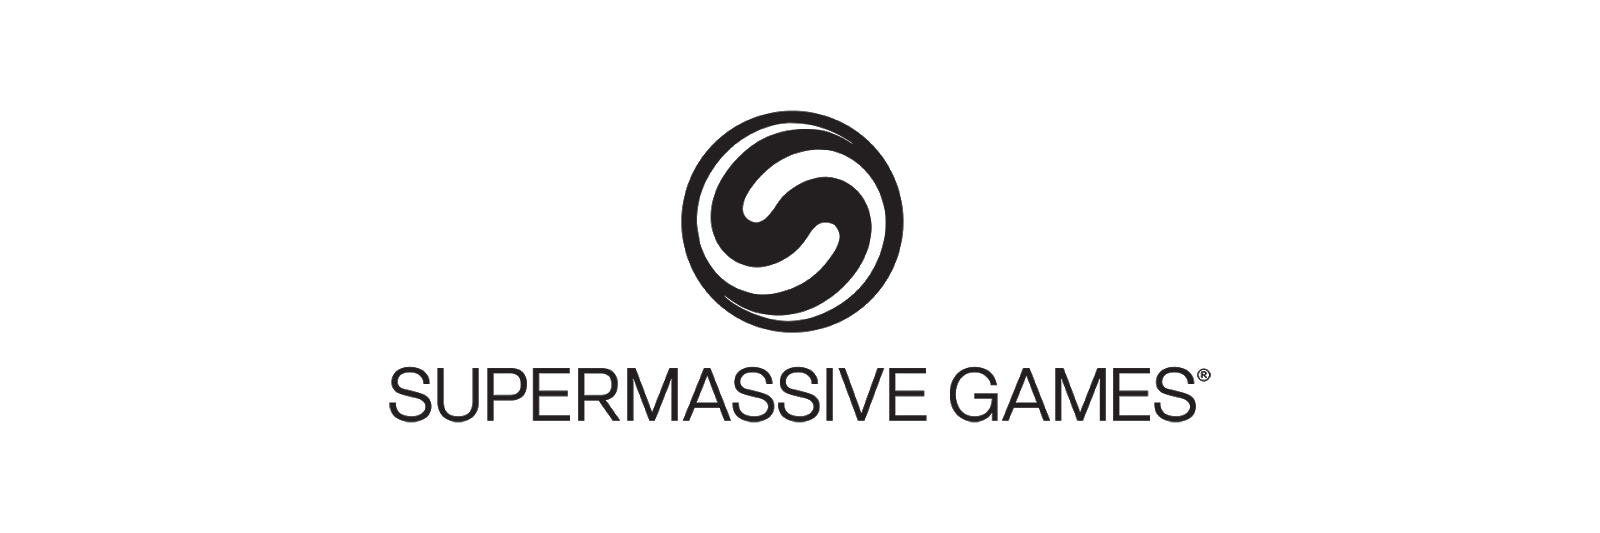 Stadia Partners with Supermassive Games Image